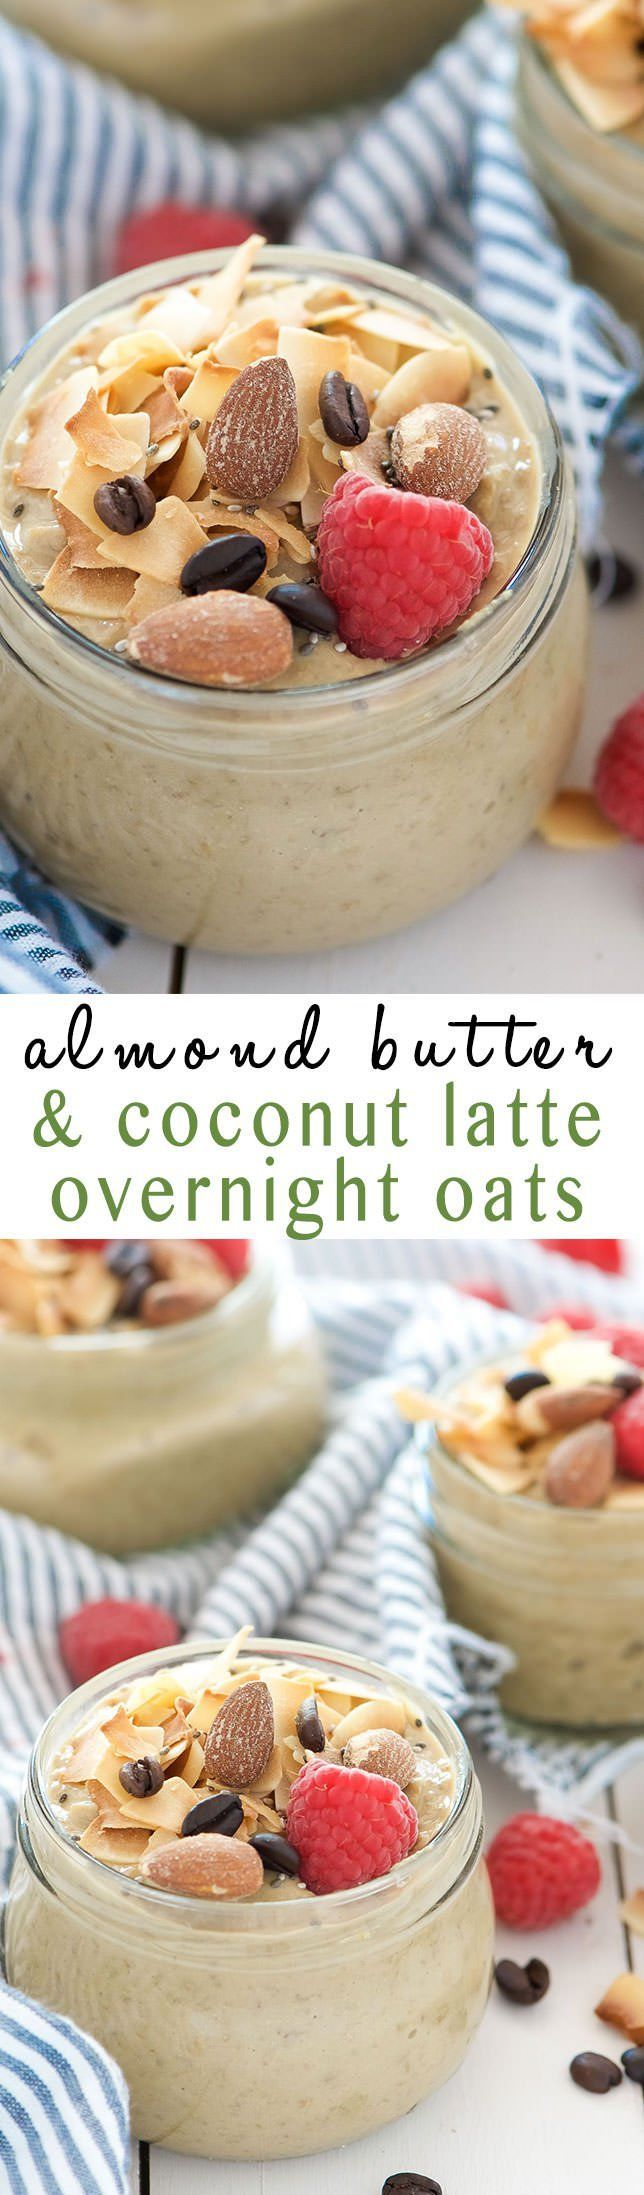 Almond, Coconut & Vanilla Latte Overnight Oats are worth getting out of bed for! Filled with dreamy vanilla almond butter, toasted coconut and coffee!